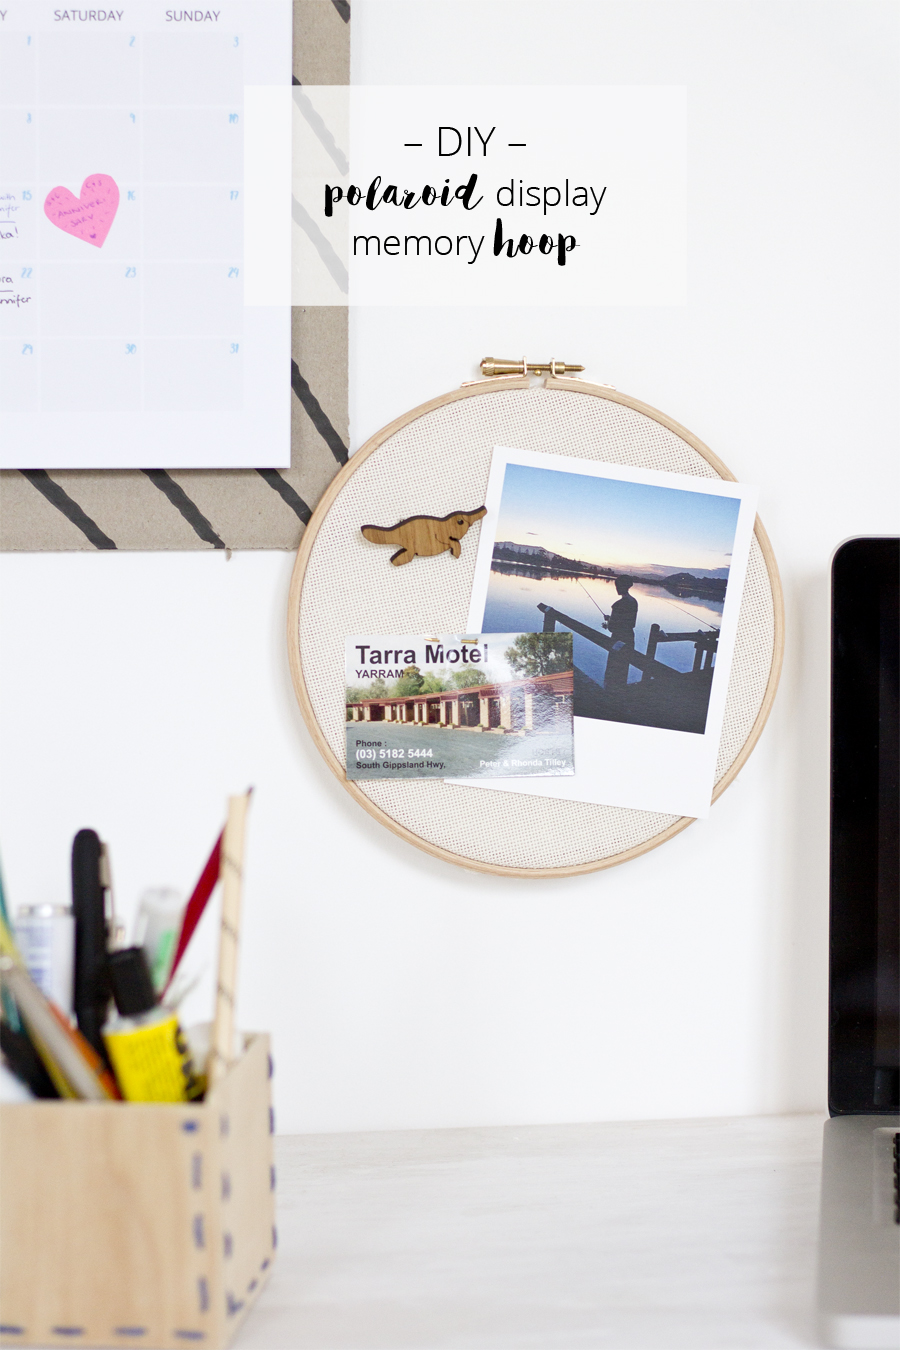 DIY Polaroid display memory embroidery loop | LOOK WHAT I MADE ...